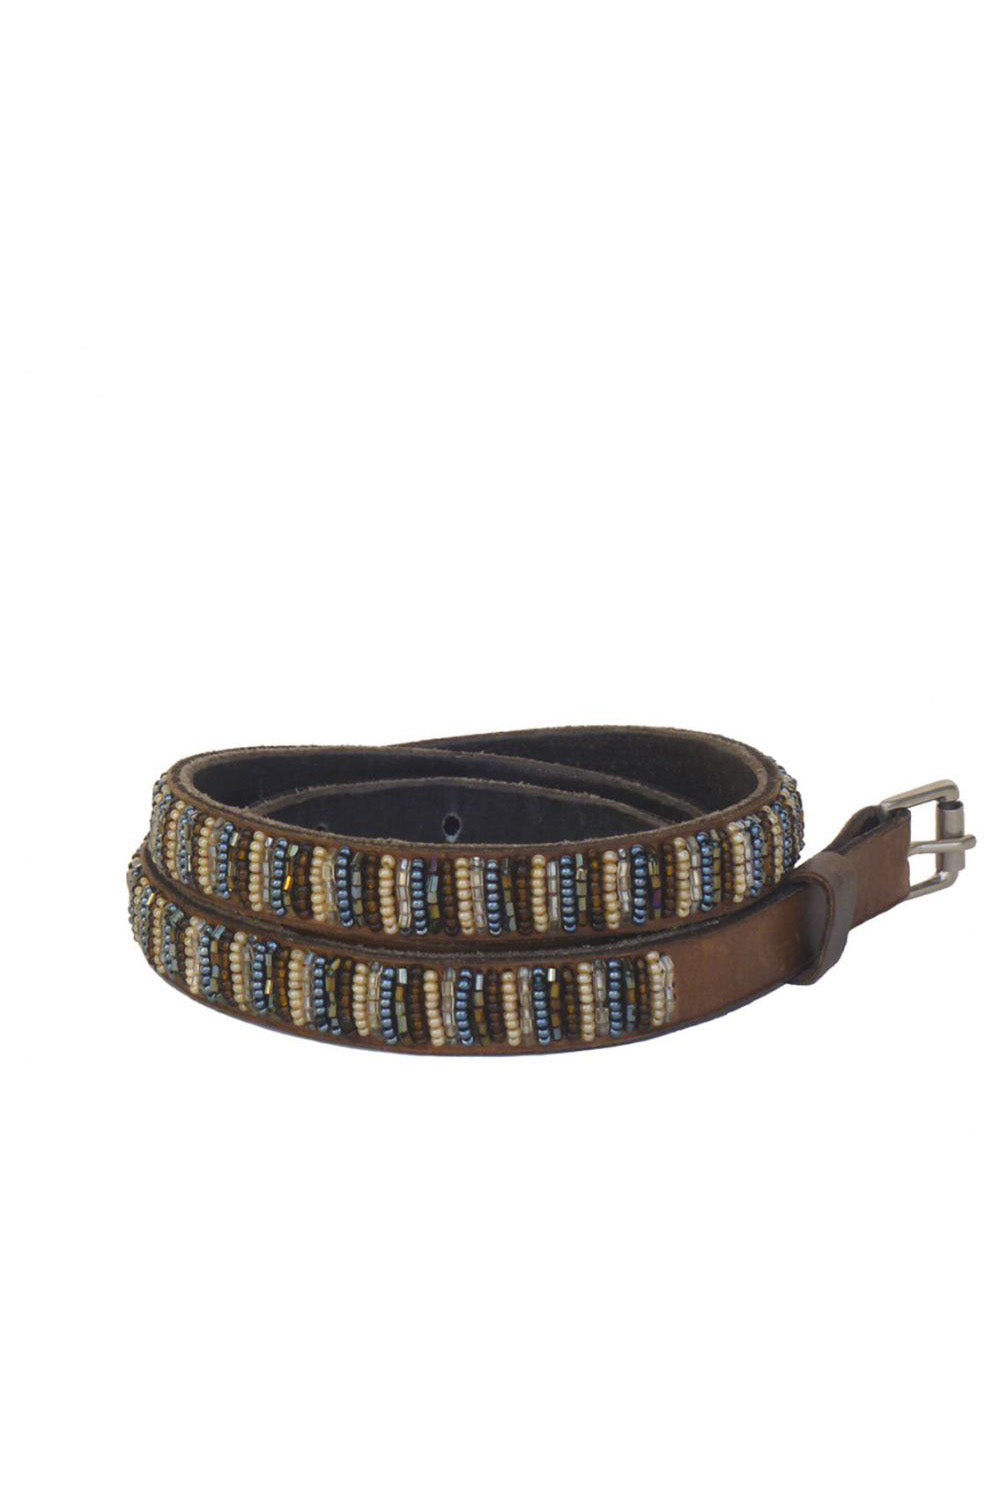 038200881 Global Girls - Skinny Beaded Leather Belt in Brown – Michelle's Ruidoso